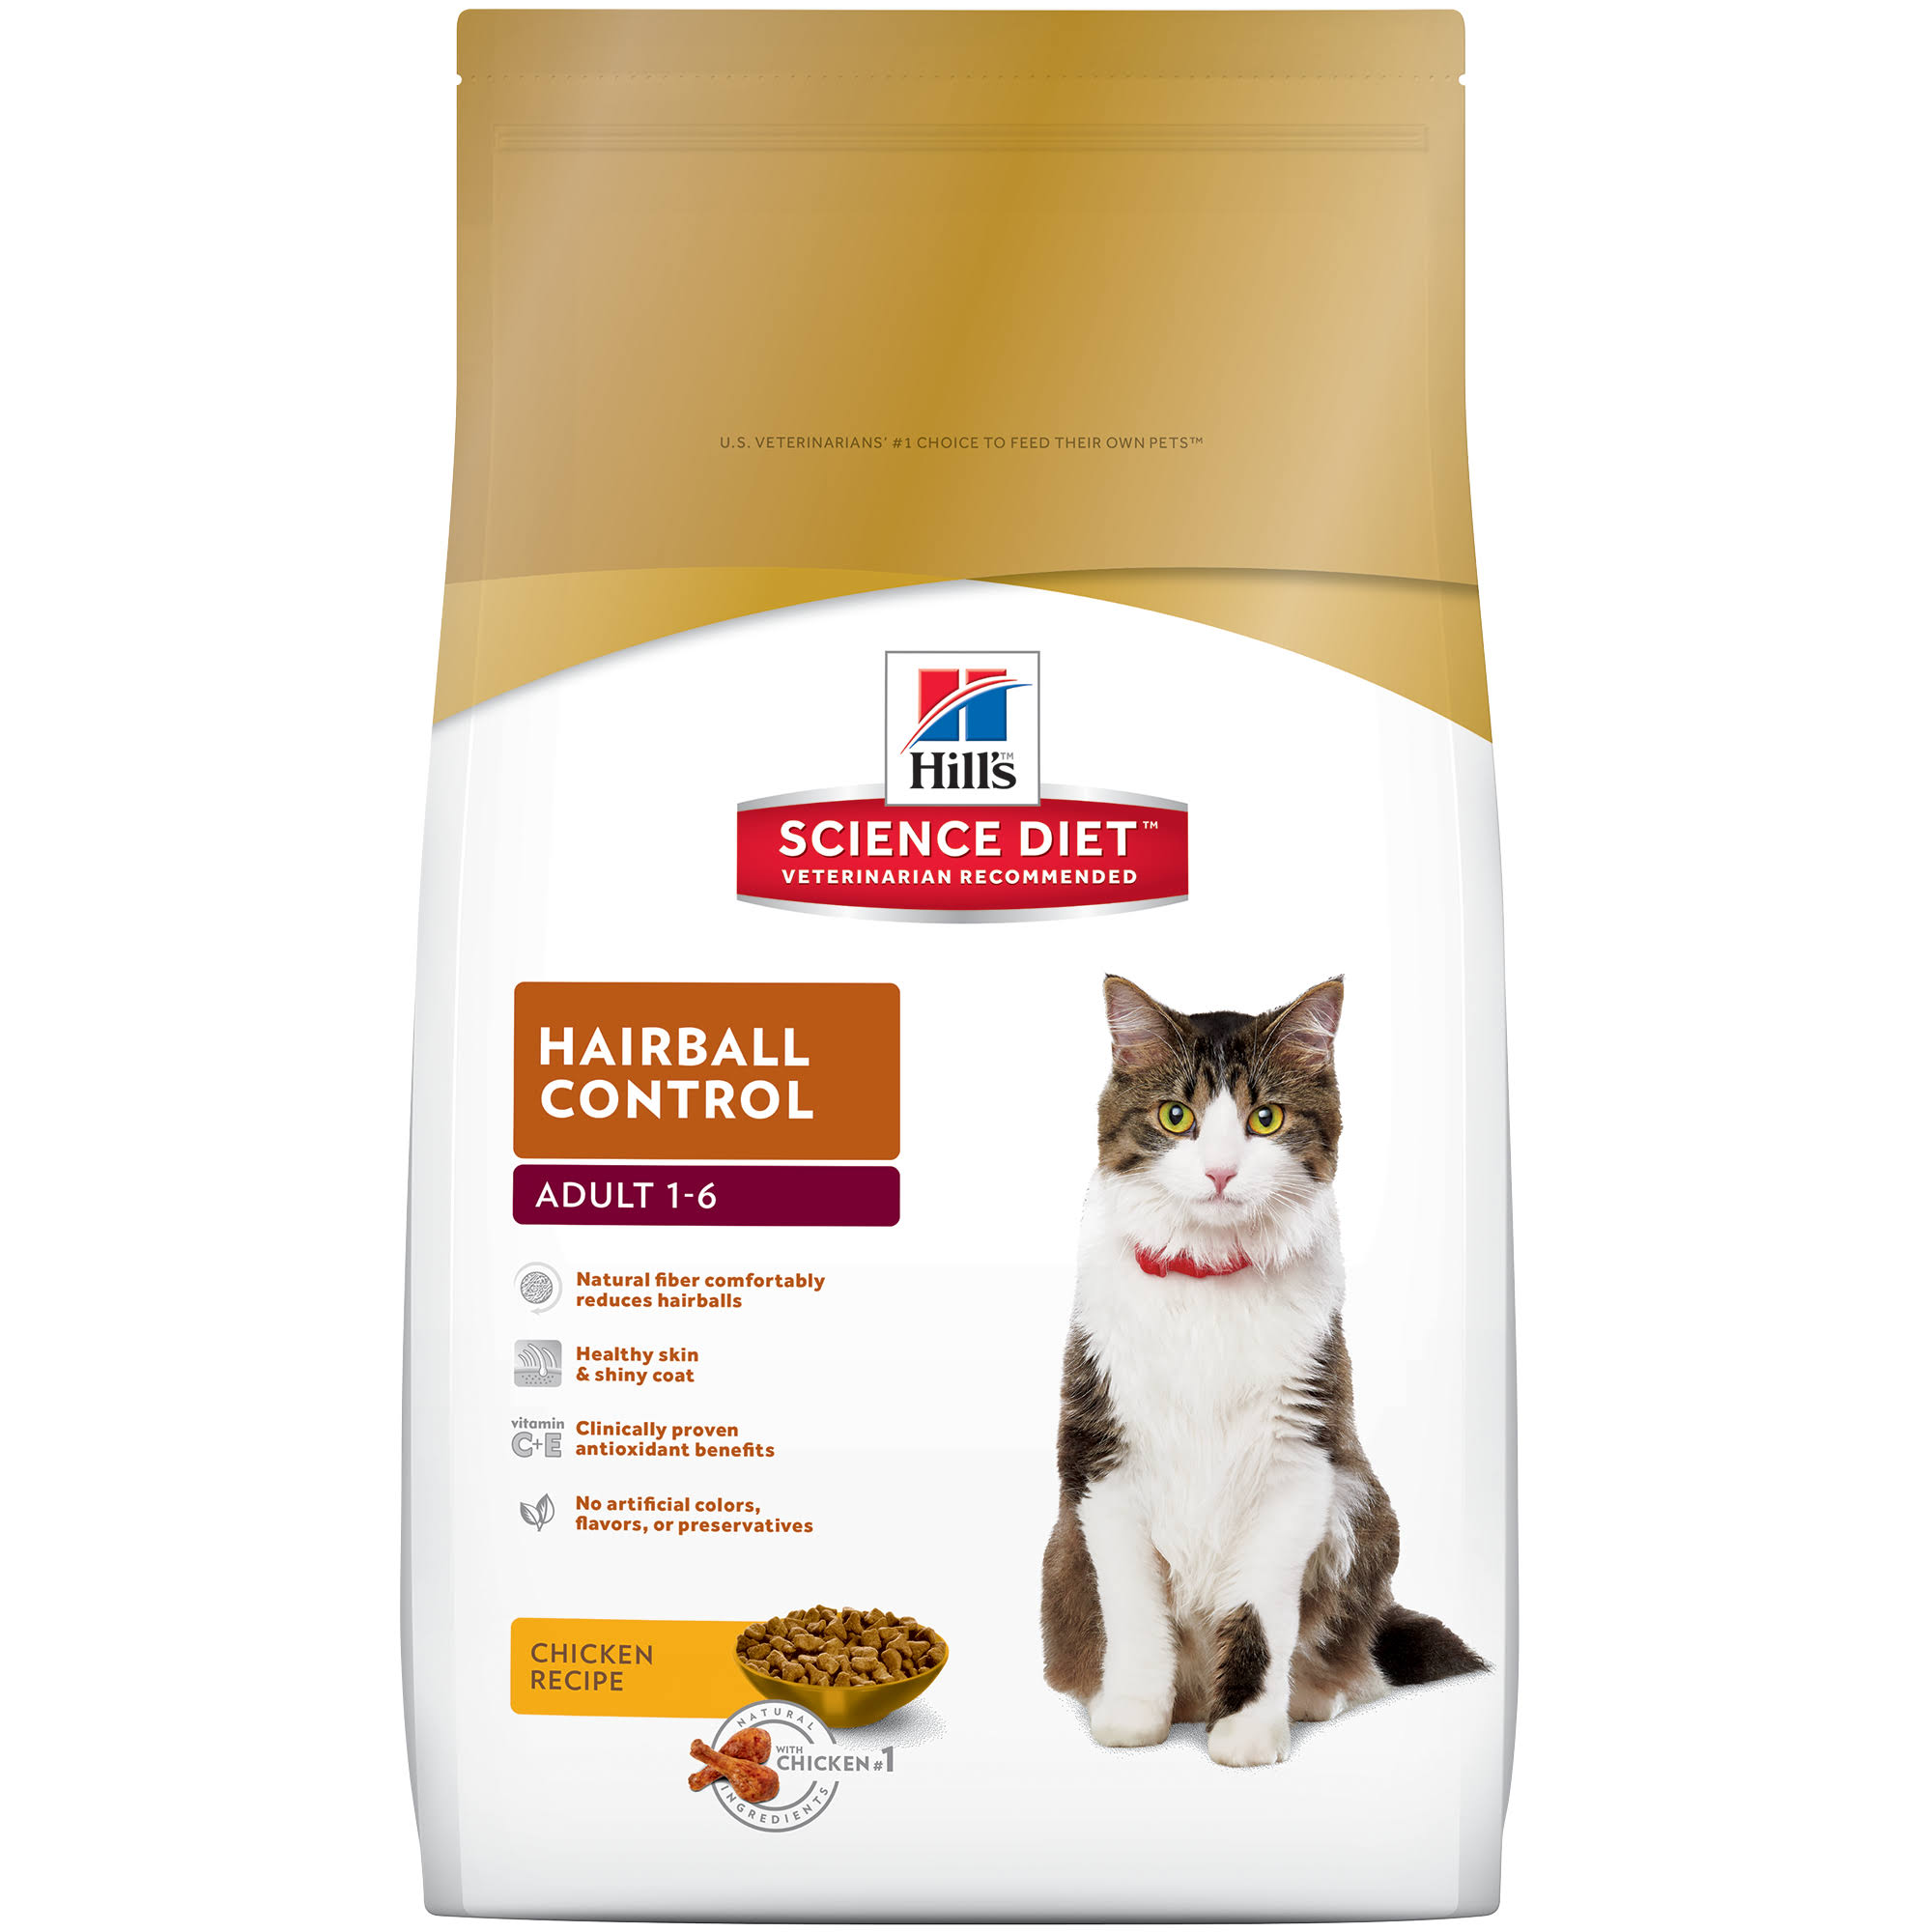 Hill's Science Diet Hairball Control Premium Natural Cat Food - Chicken Recipe, Adult 1-6, 7lbs